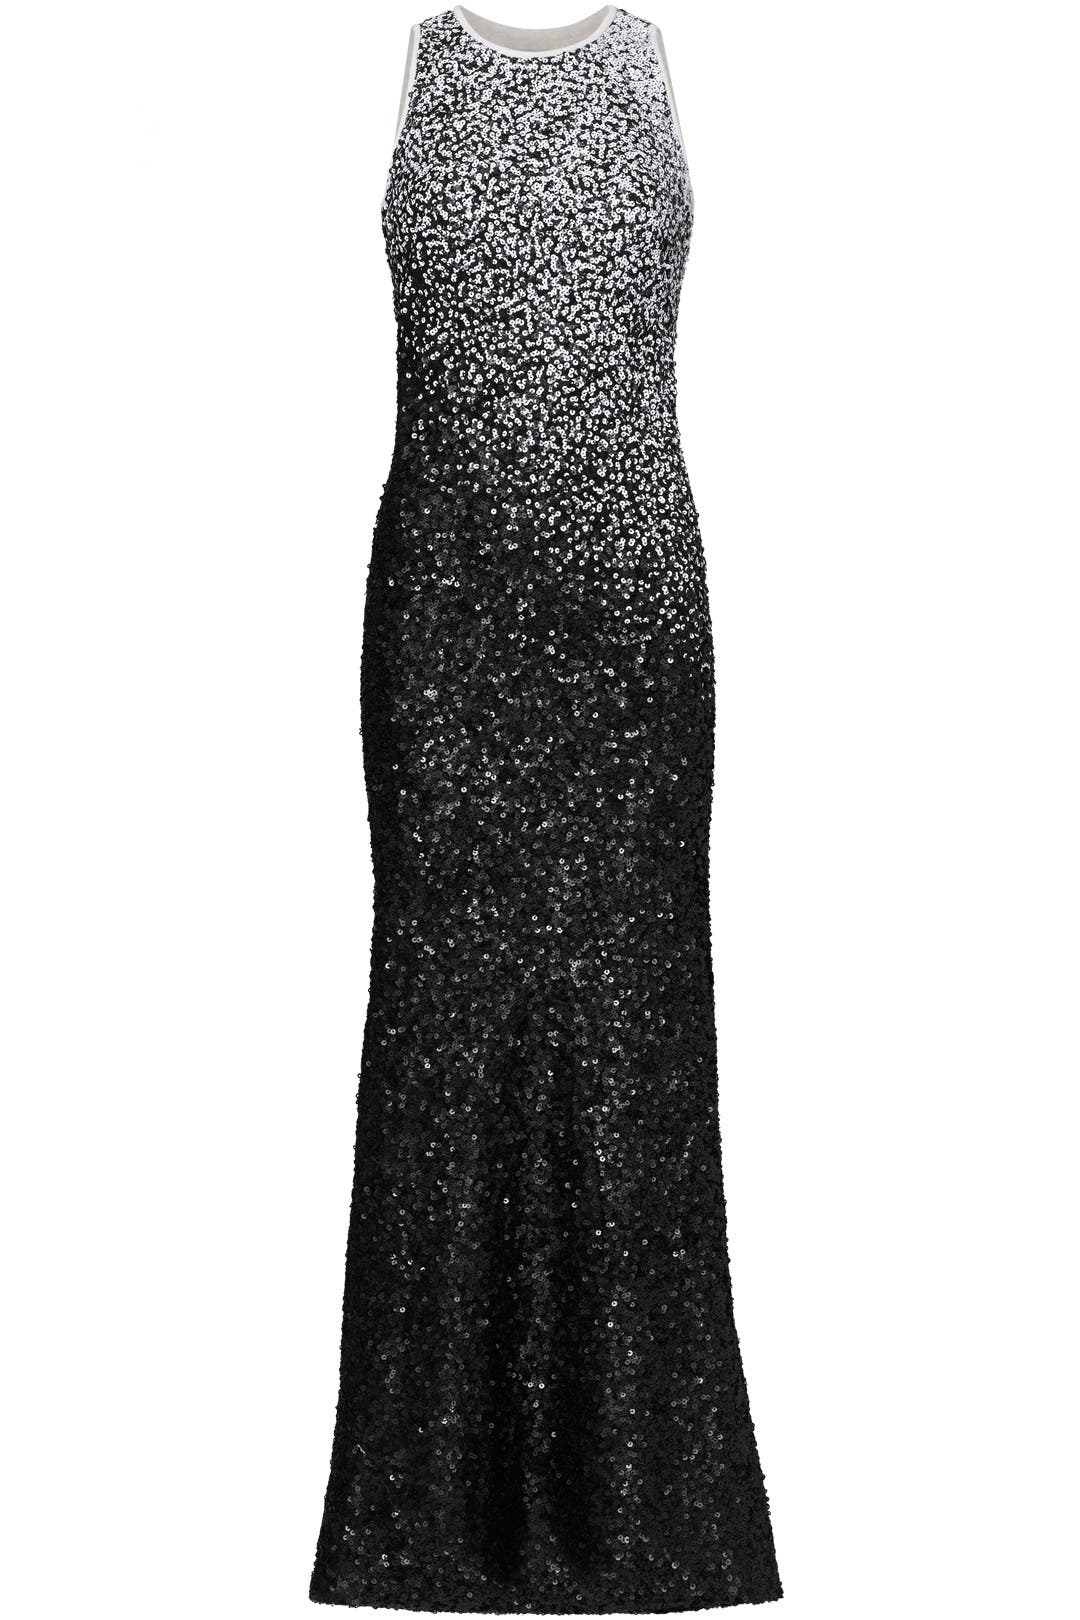 Ombre Sequin Gown by Carmen Marc Valvo for $155 - $175 | Rent the Runway